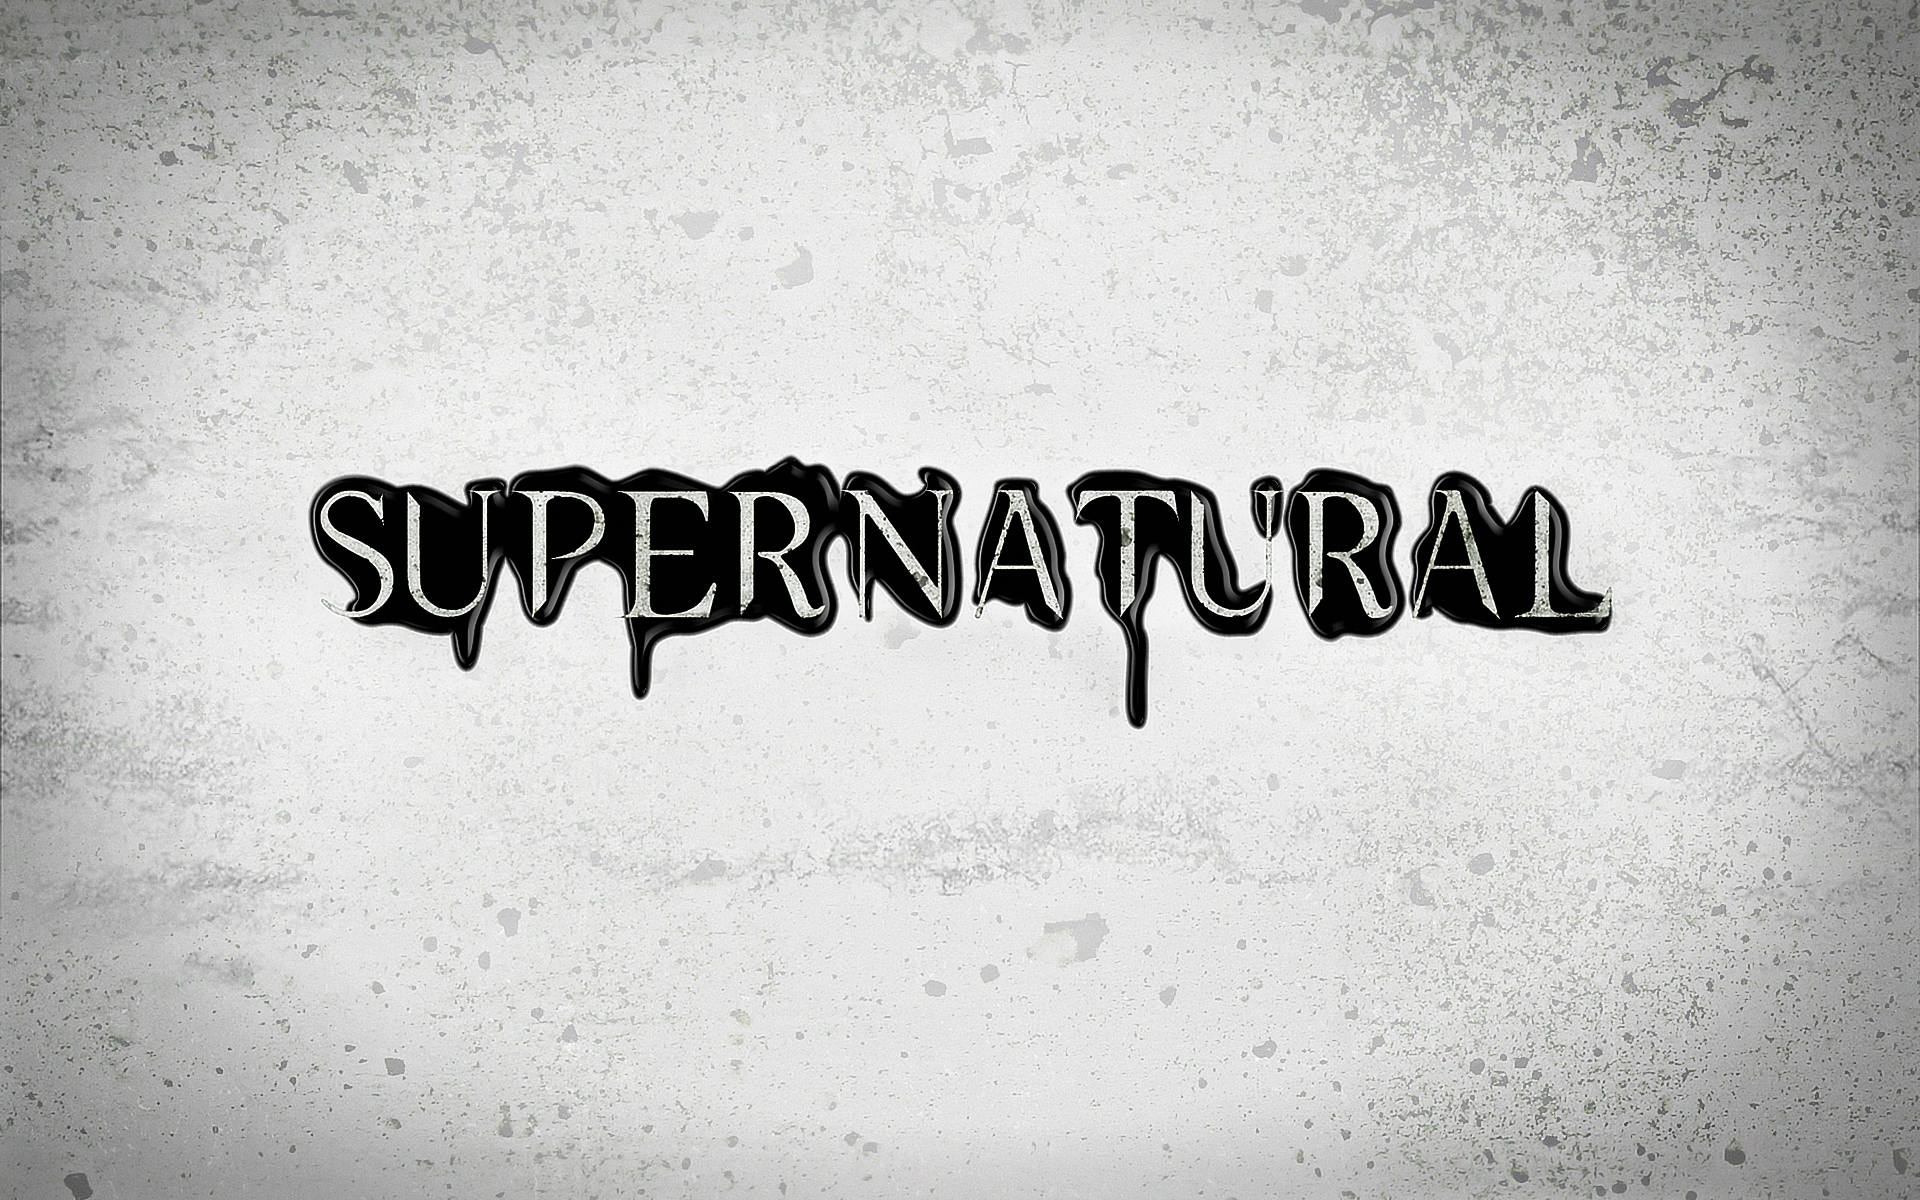 wallpaper movies tv 2011 2015 inickeon supernatural season 7 wallpaper 1920x1200